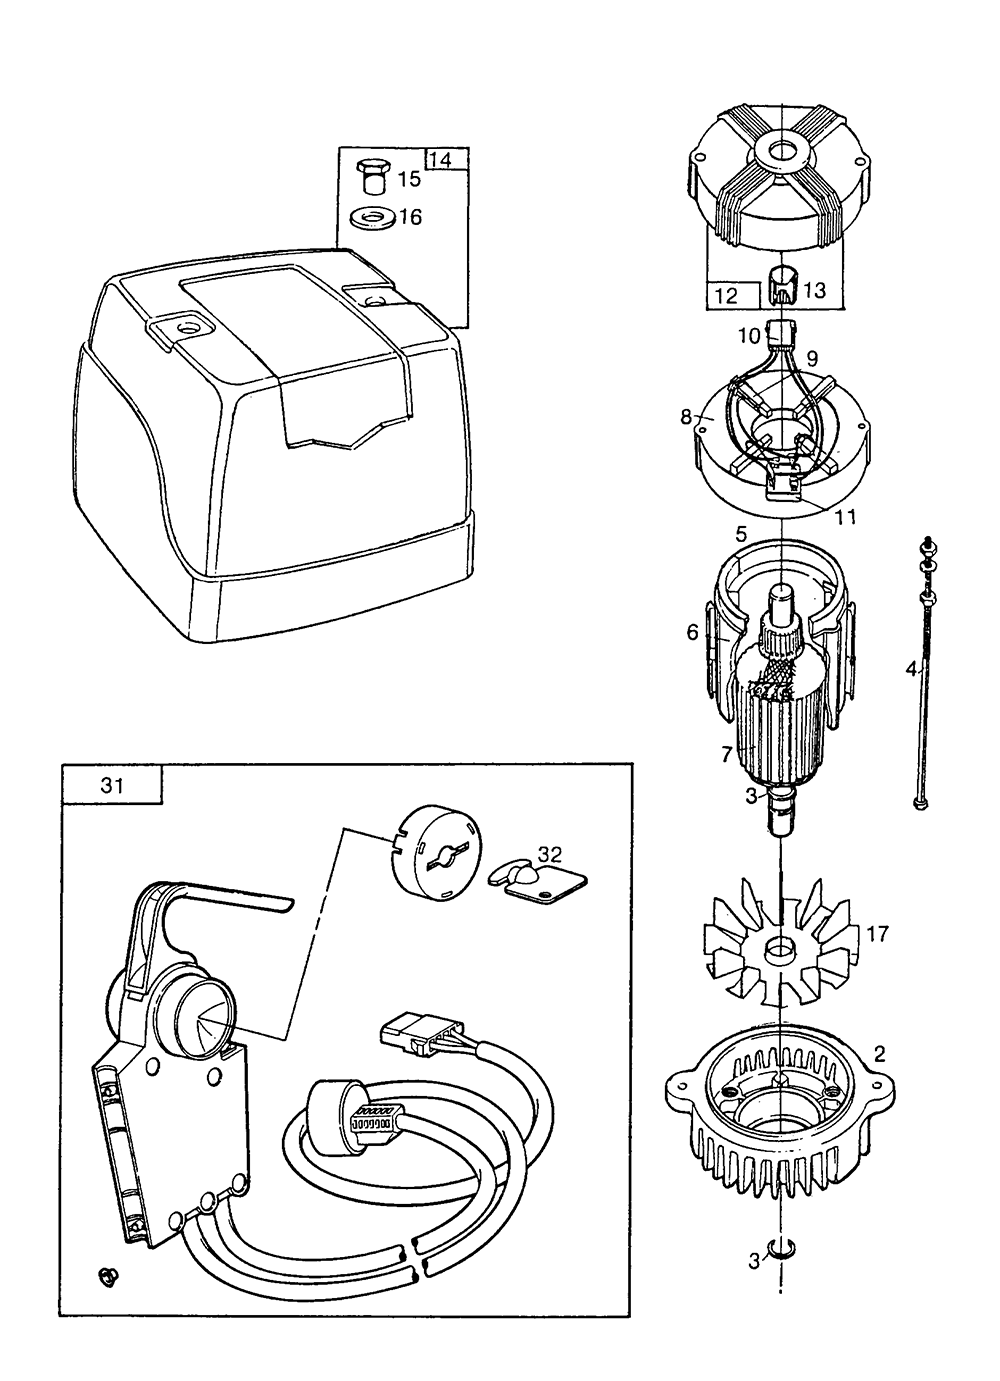 US7677344 moreover Tractor And Wagon Coloring Page Sketch Templates in addition Wiring Diagram Bridge Rectifier furthermore Premier Carts Retail Store Grocery Shopping Cart besides 102168. on lawn mower wagon